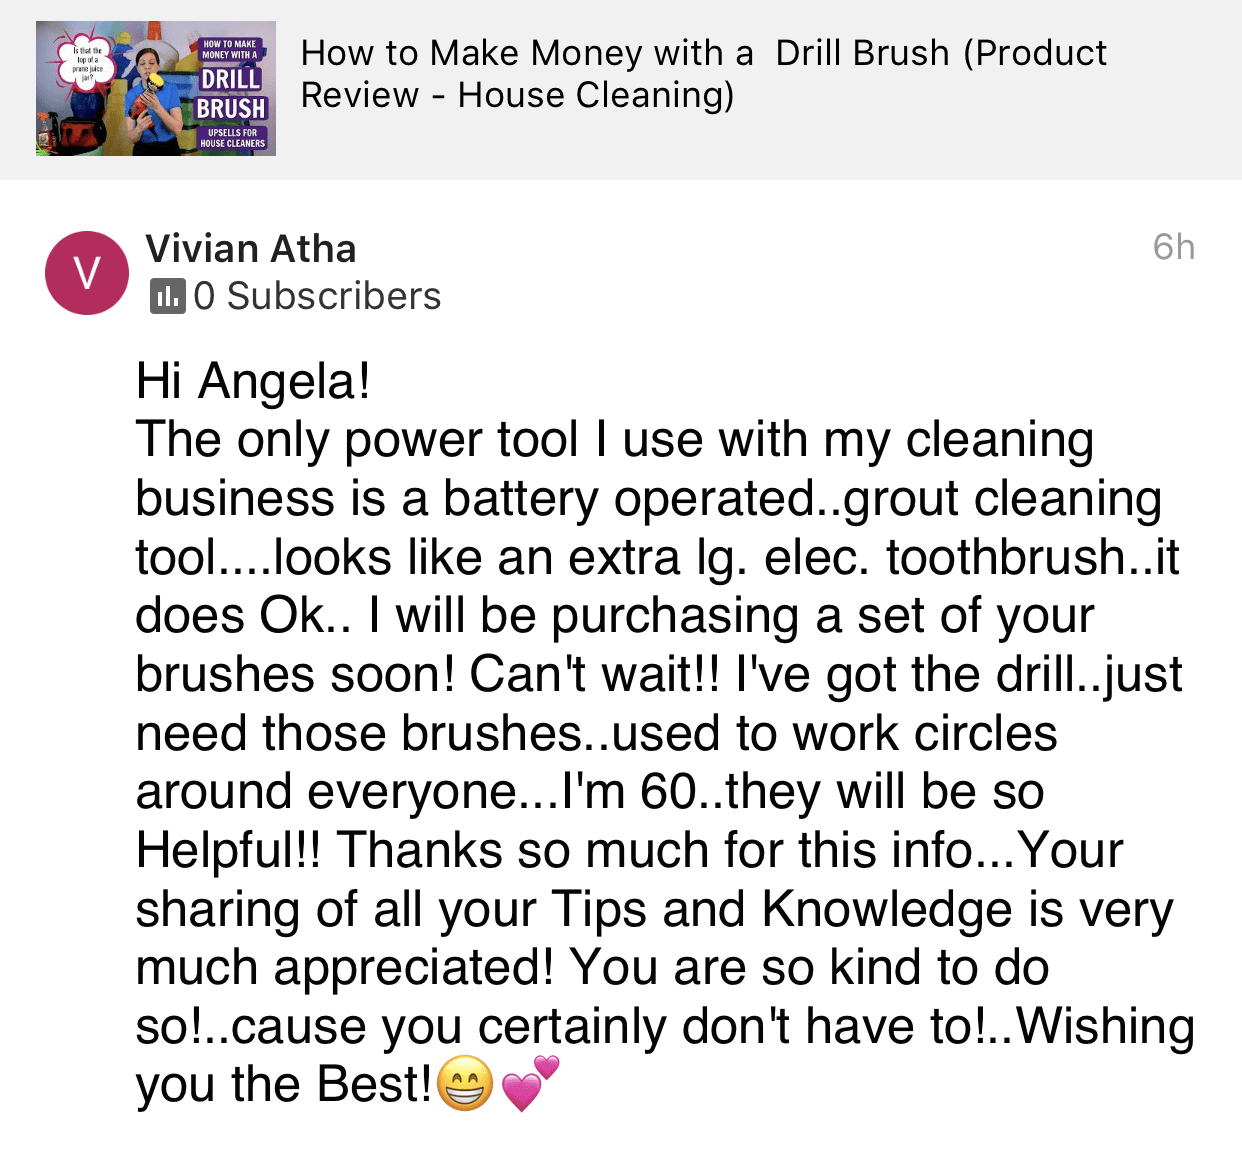 Your sharing is appreciated, Savvy Cleaner Product Review Testimonial